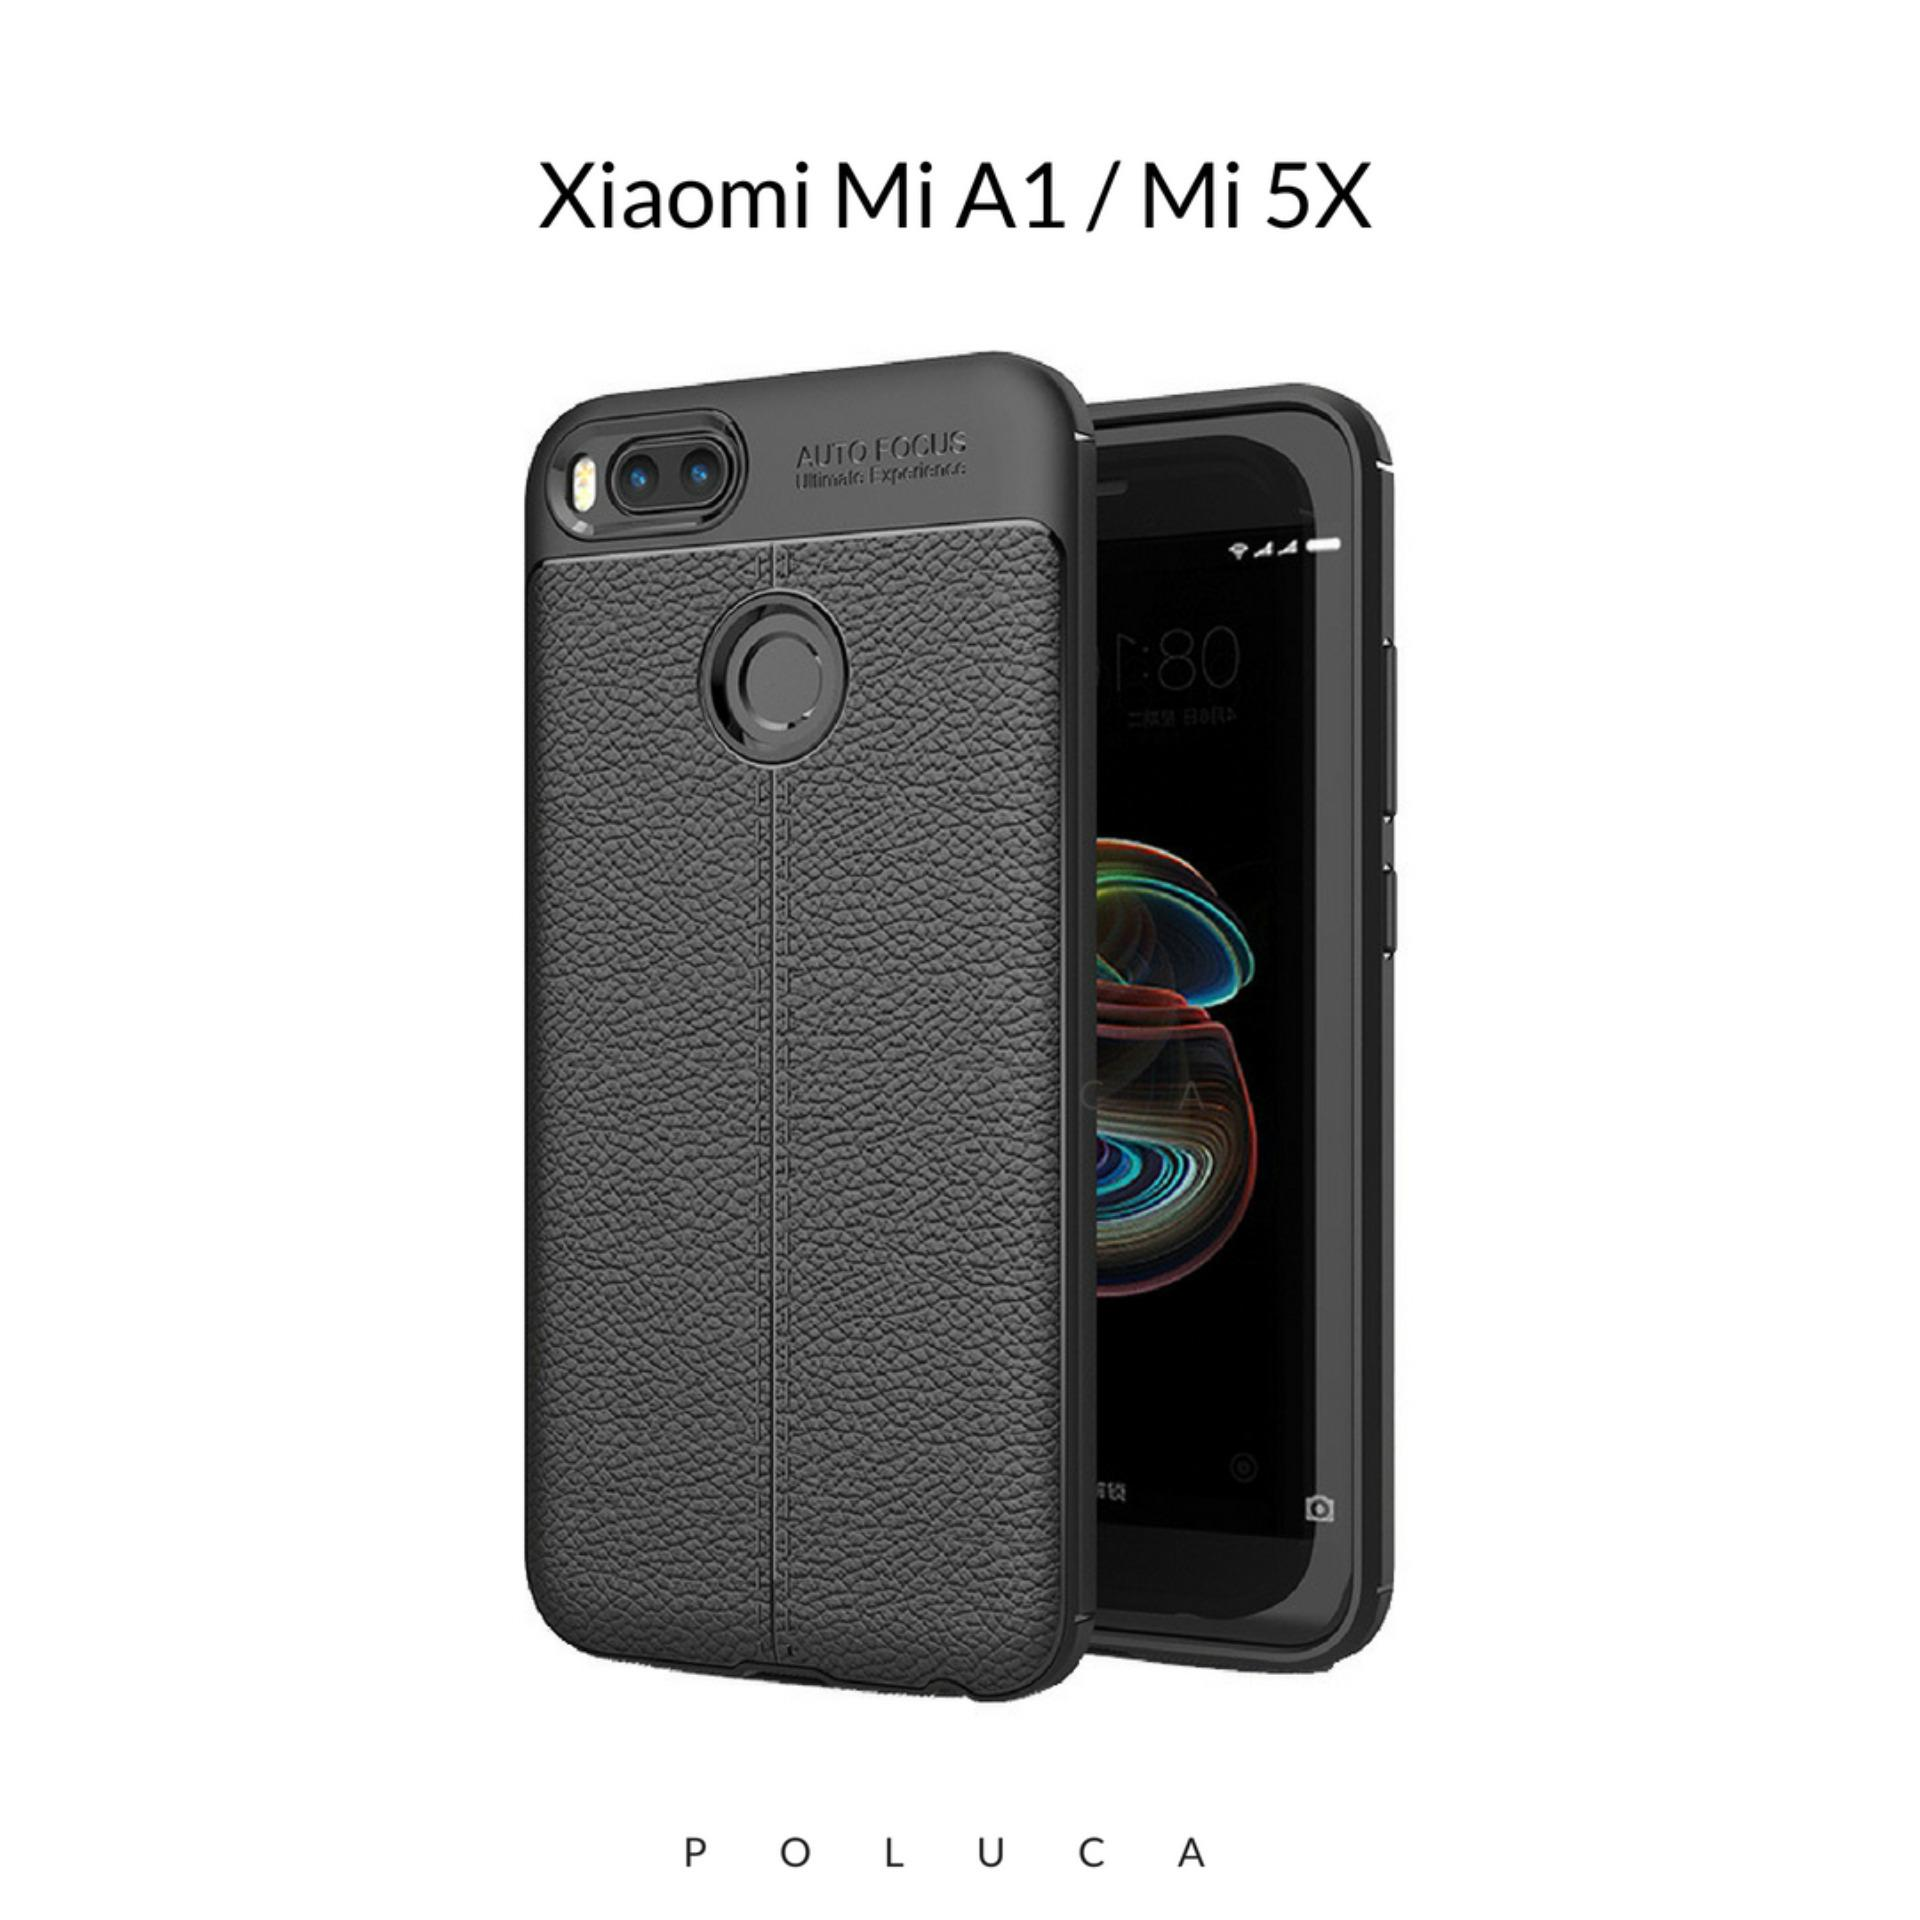 Poluca Luxury Case For Xiaomi Mi A1 / Mi 5X Ultimate Experience TPU Leather Autofocus -